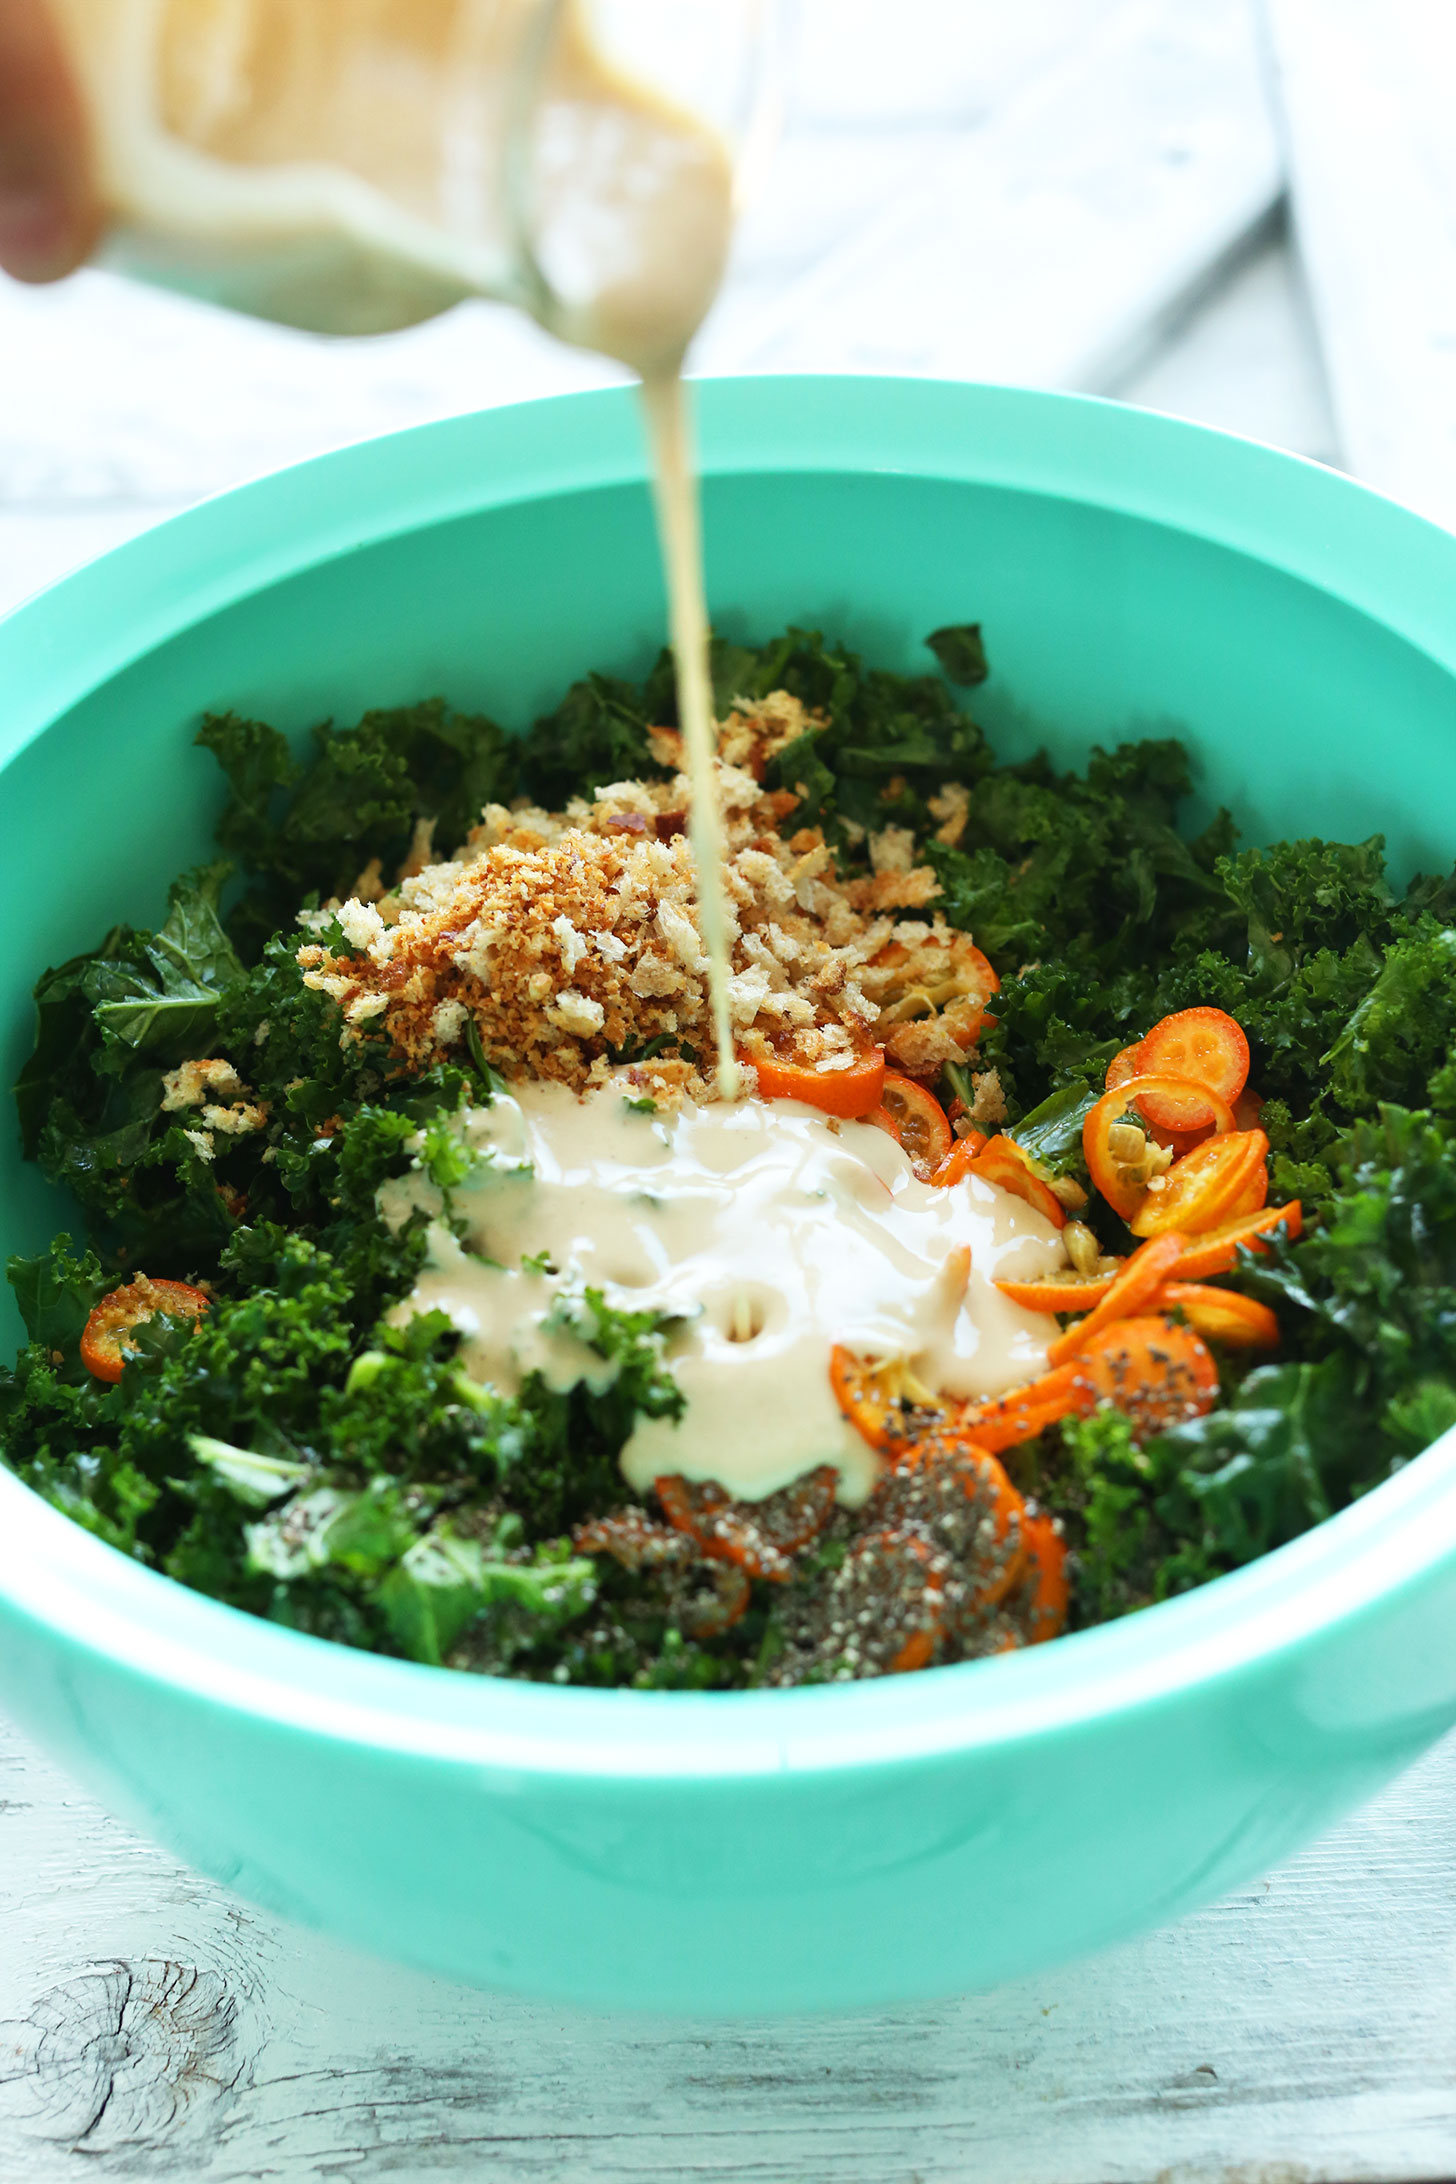 Kumquat Kale Salad   Minimalist Baker Recipes Pouring Tahini Dressing onto our delicious vegan Kale Salad with Kumquats